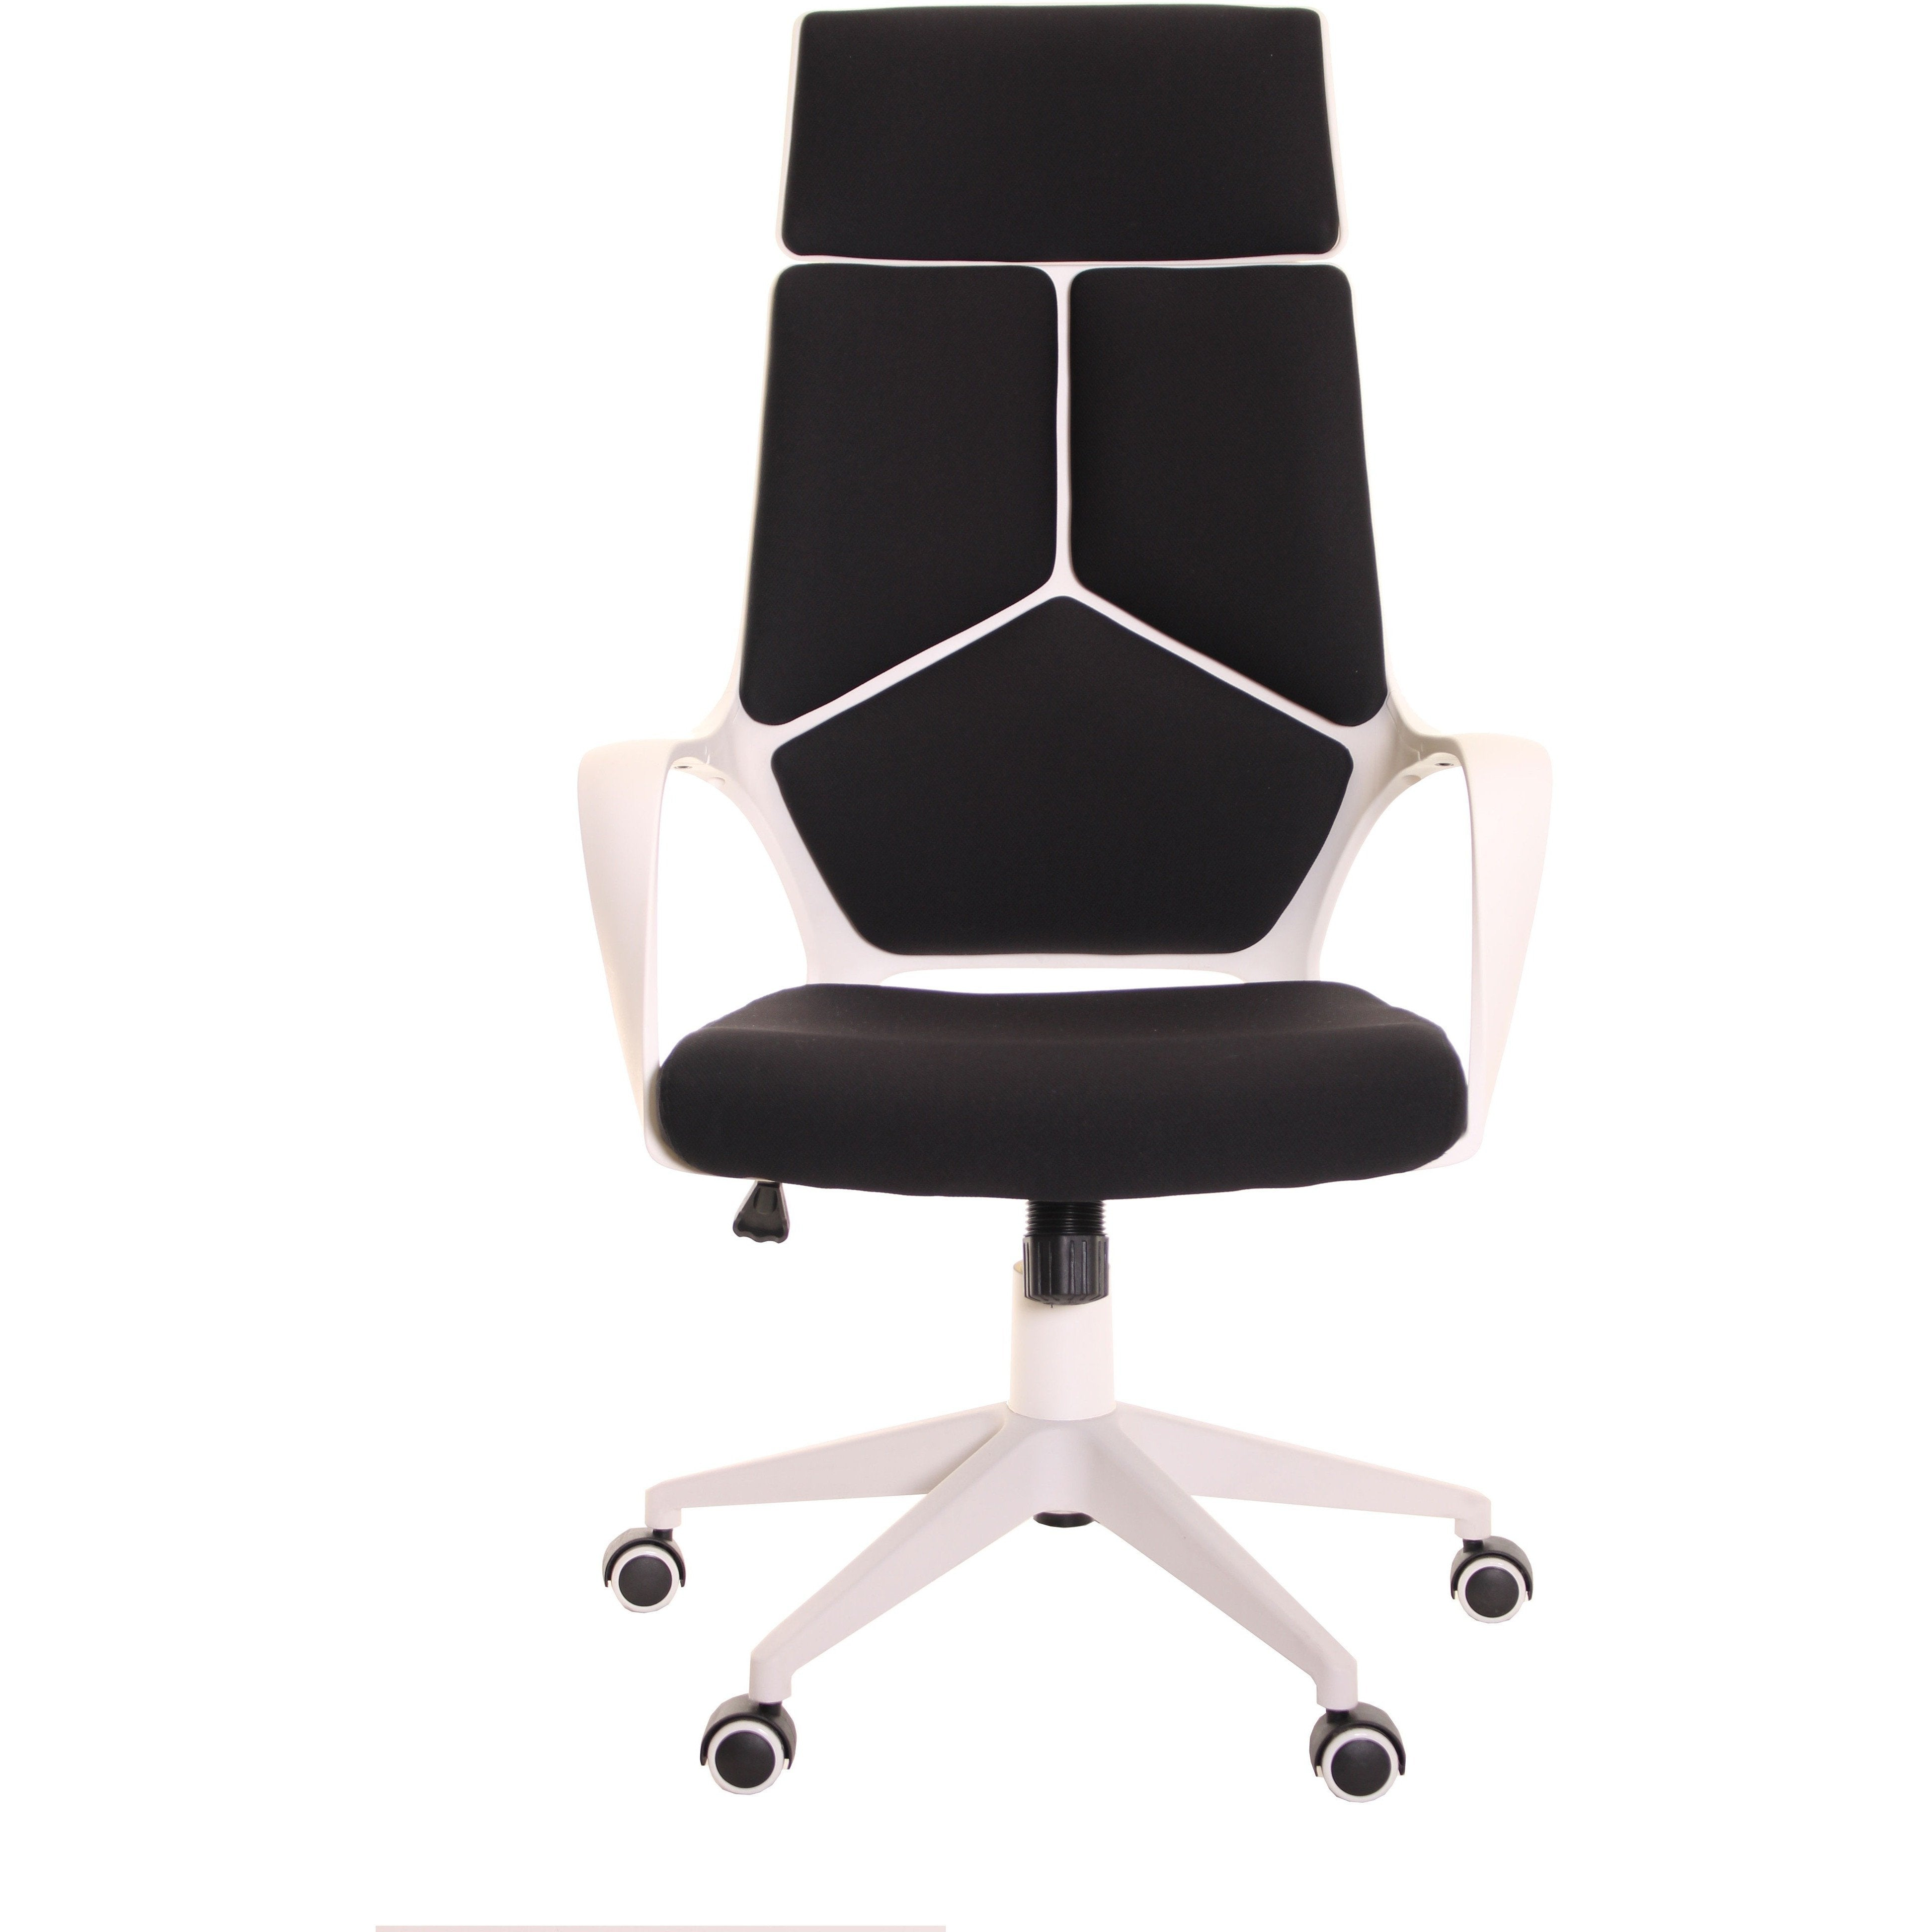 Delightful Modern Ergonomic Office Chair Black White By TimeOffice